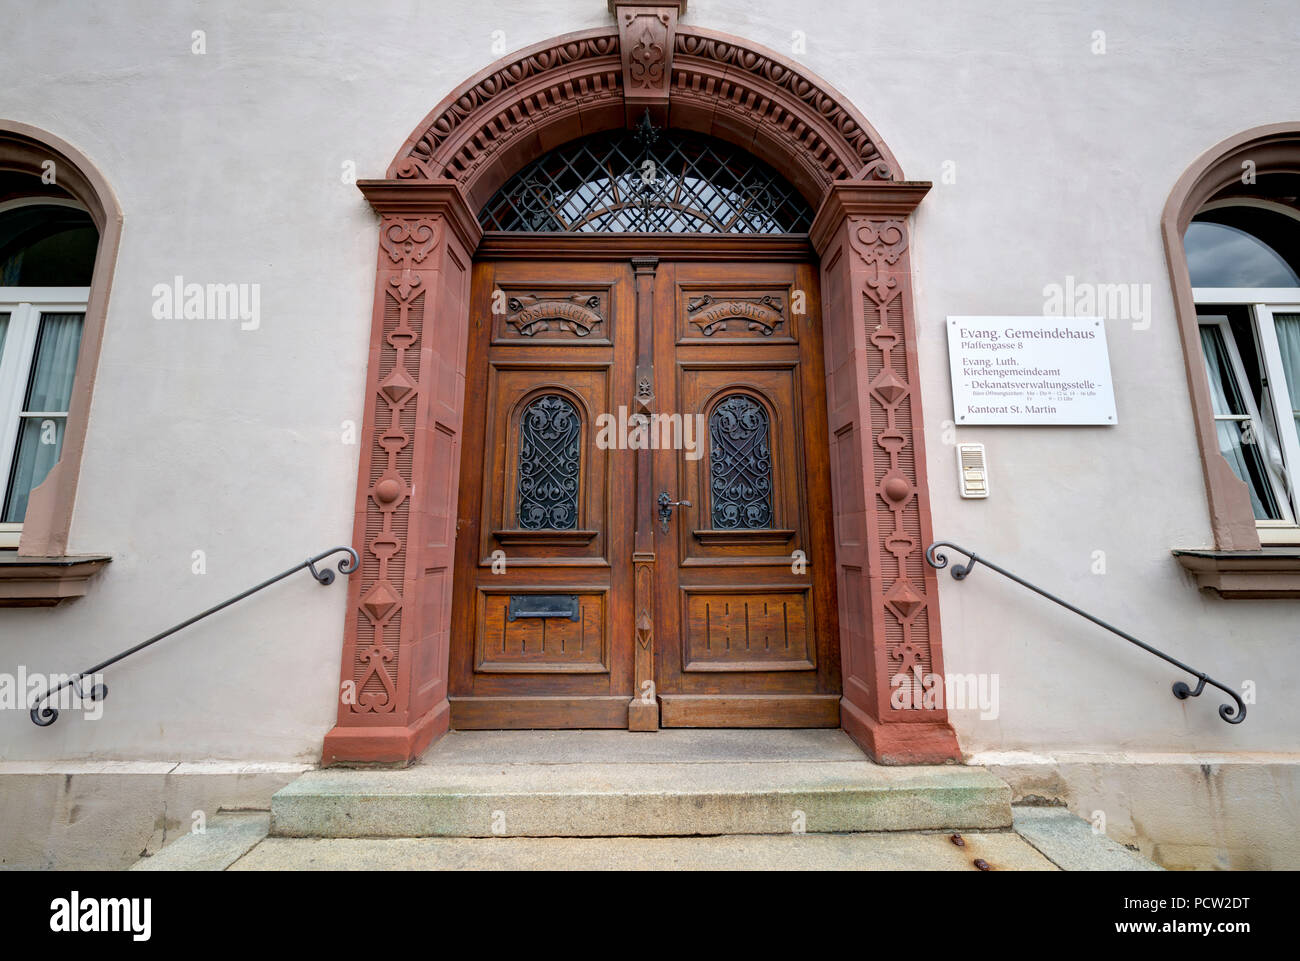 Evangelical Parish hall, house facade, city architecture, Memmingen, summer, Bavaria, Germany - Stock Image